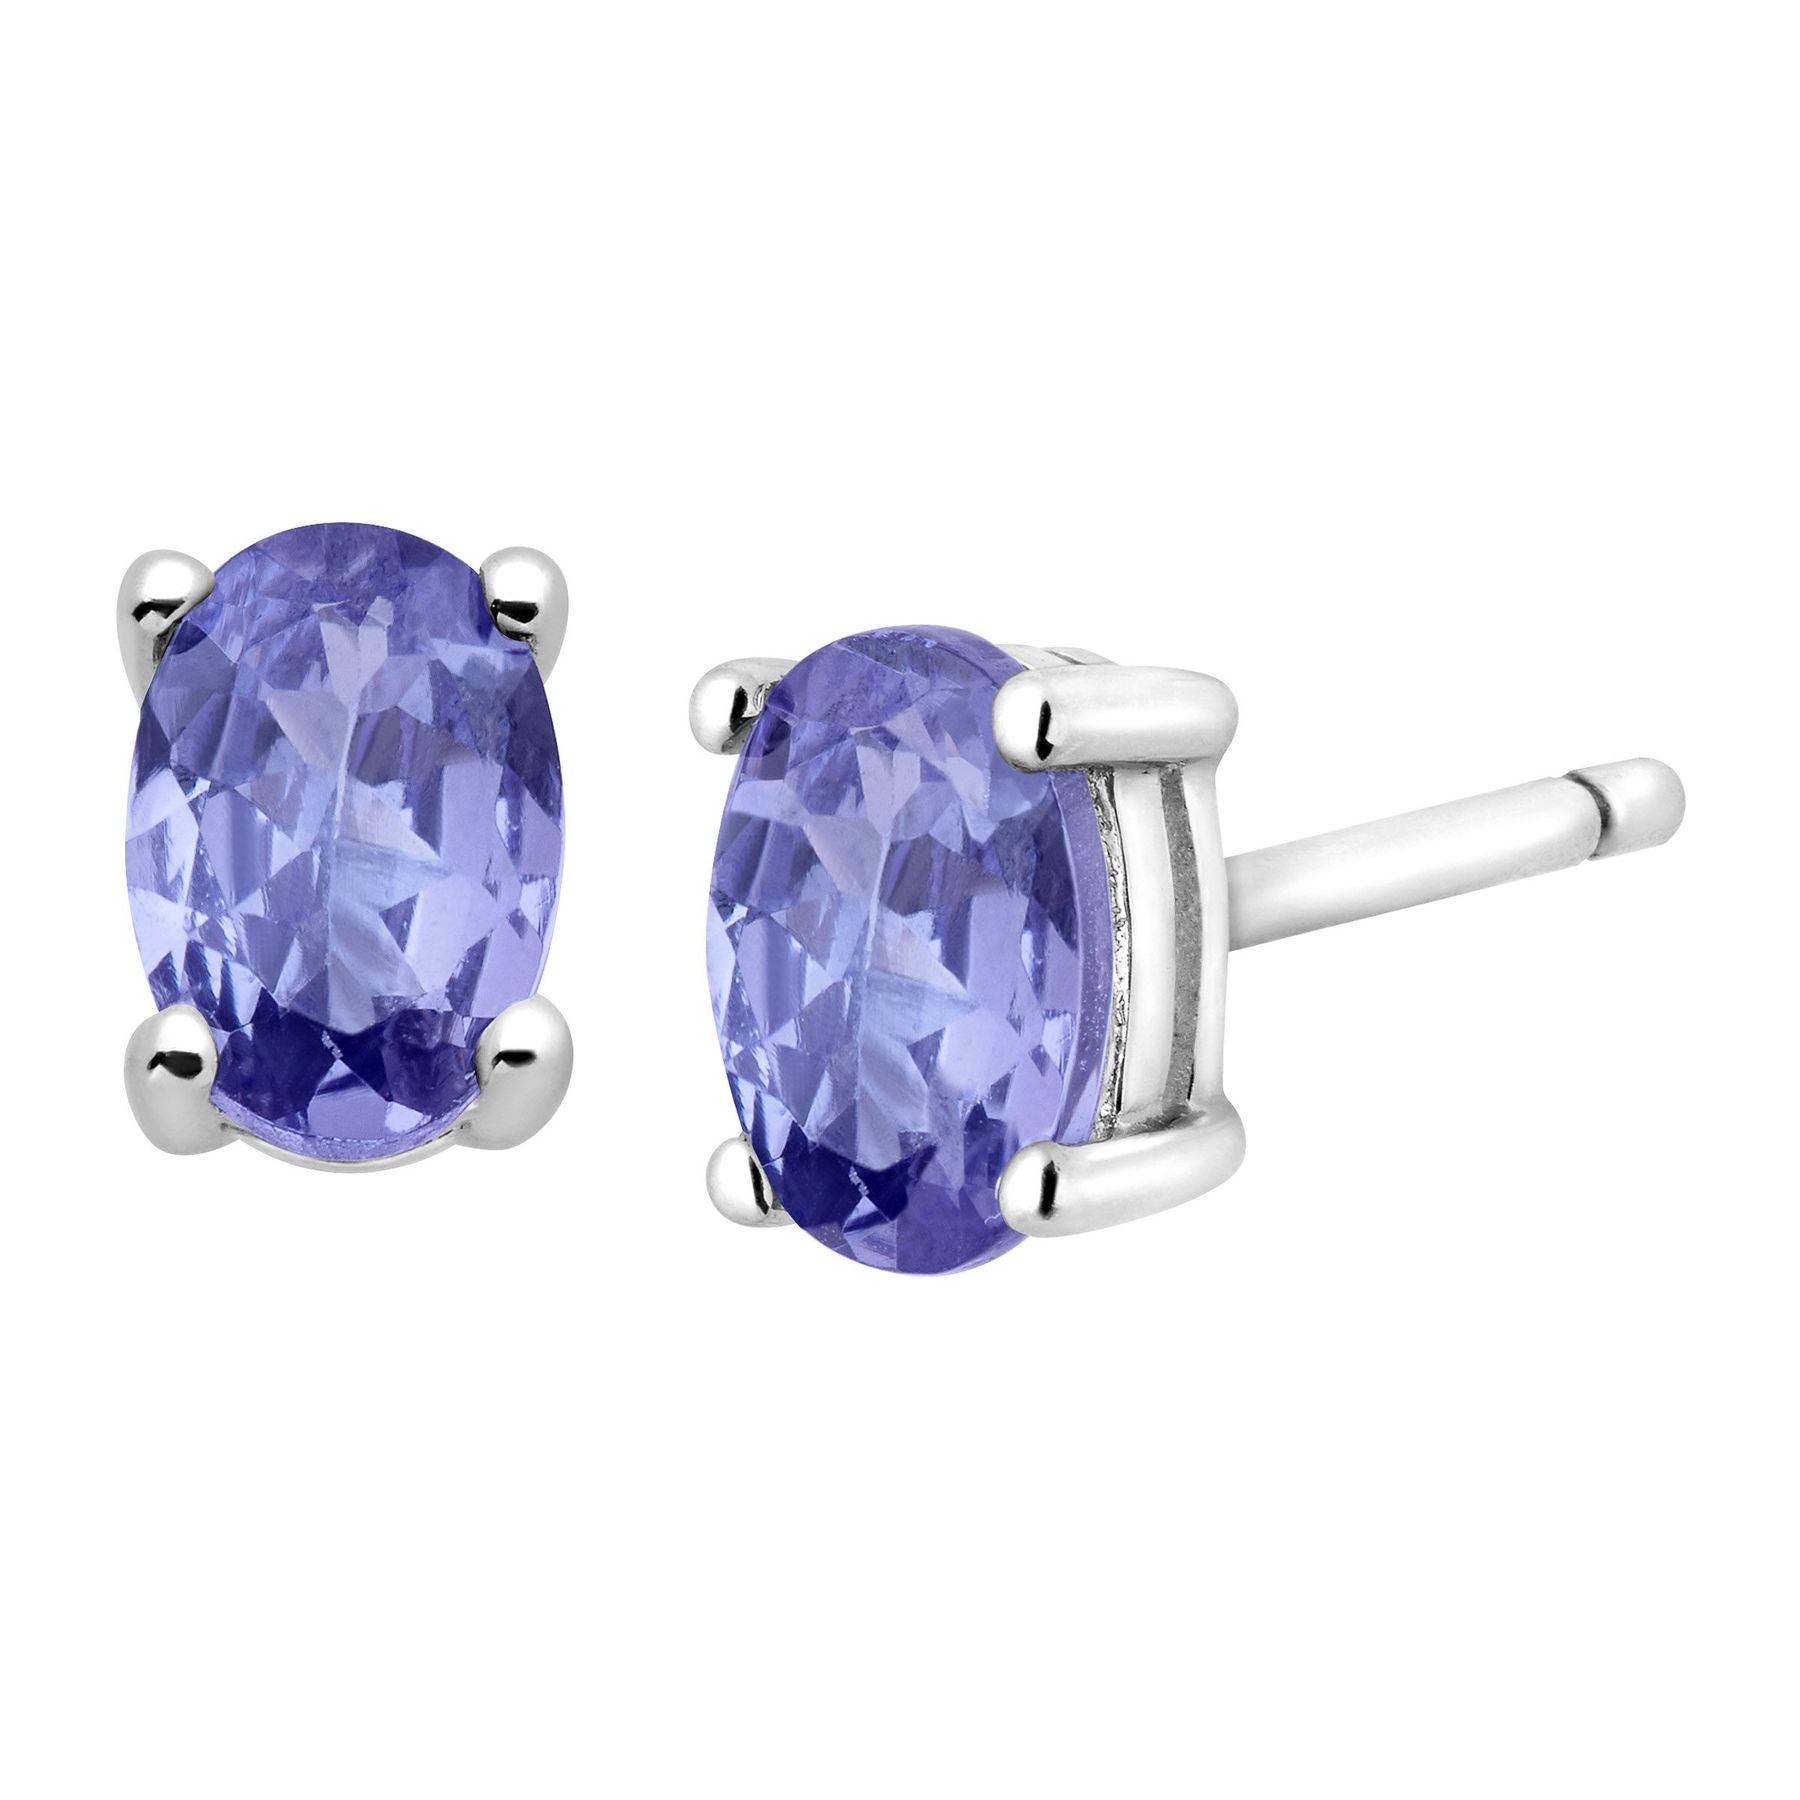 kavels tanzanite reserve price catawiki ct no